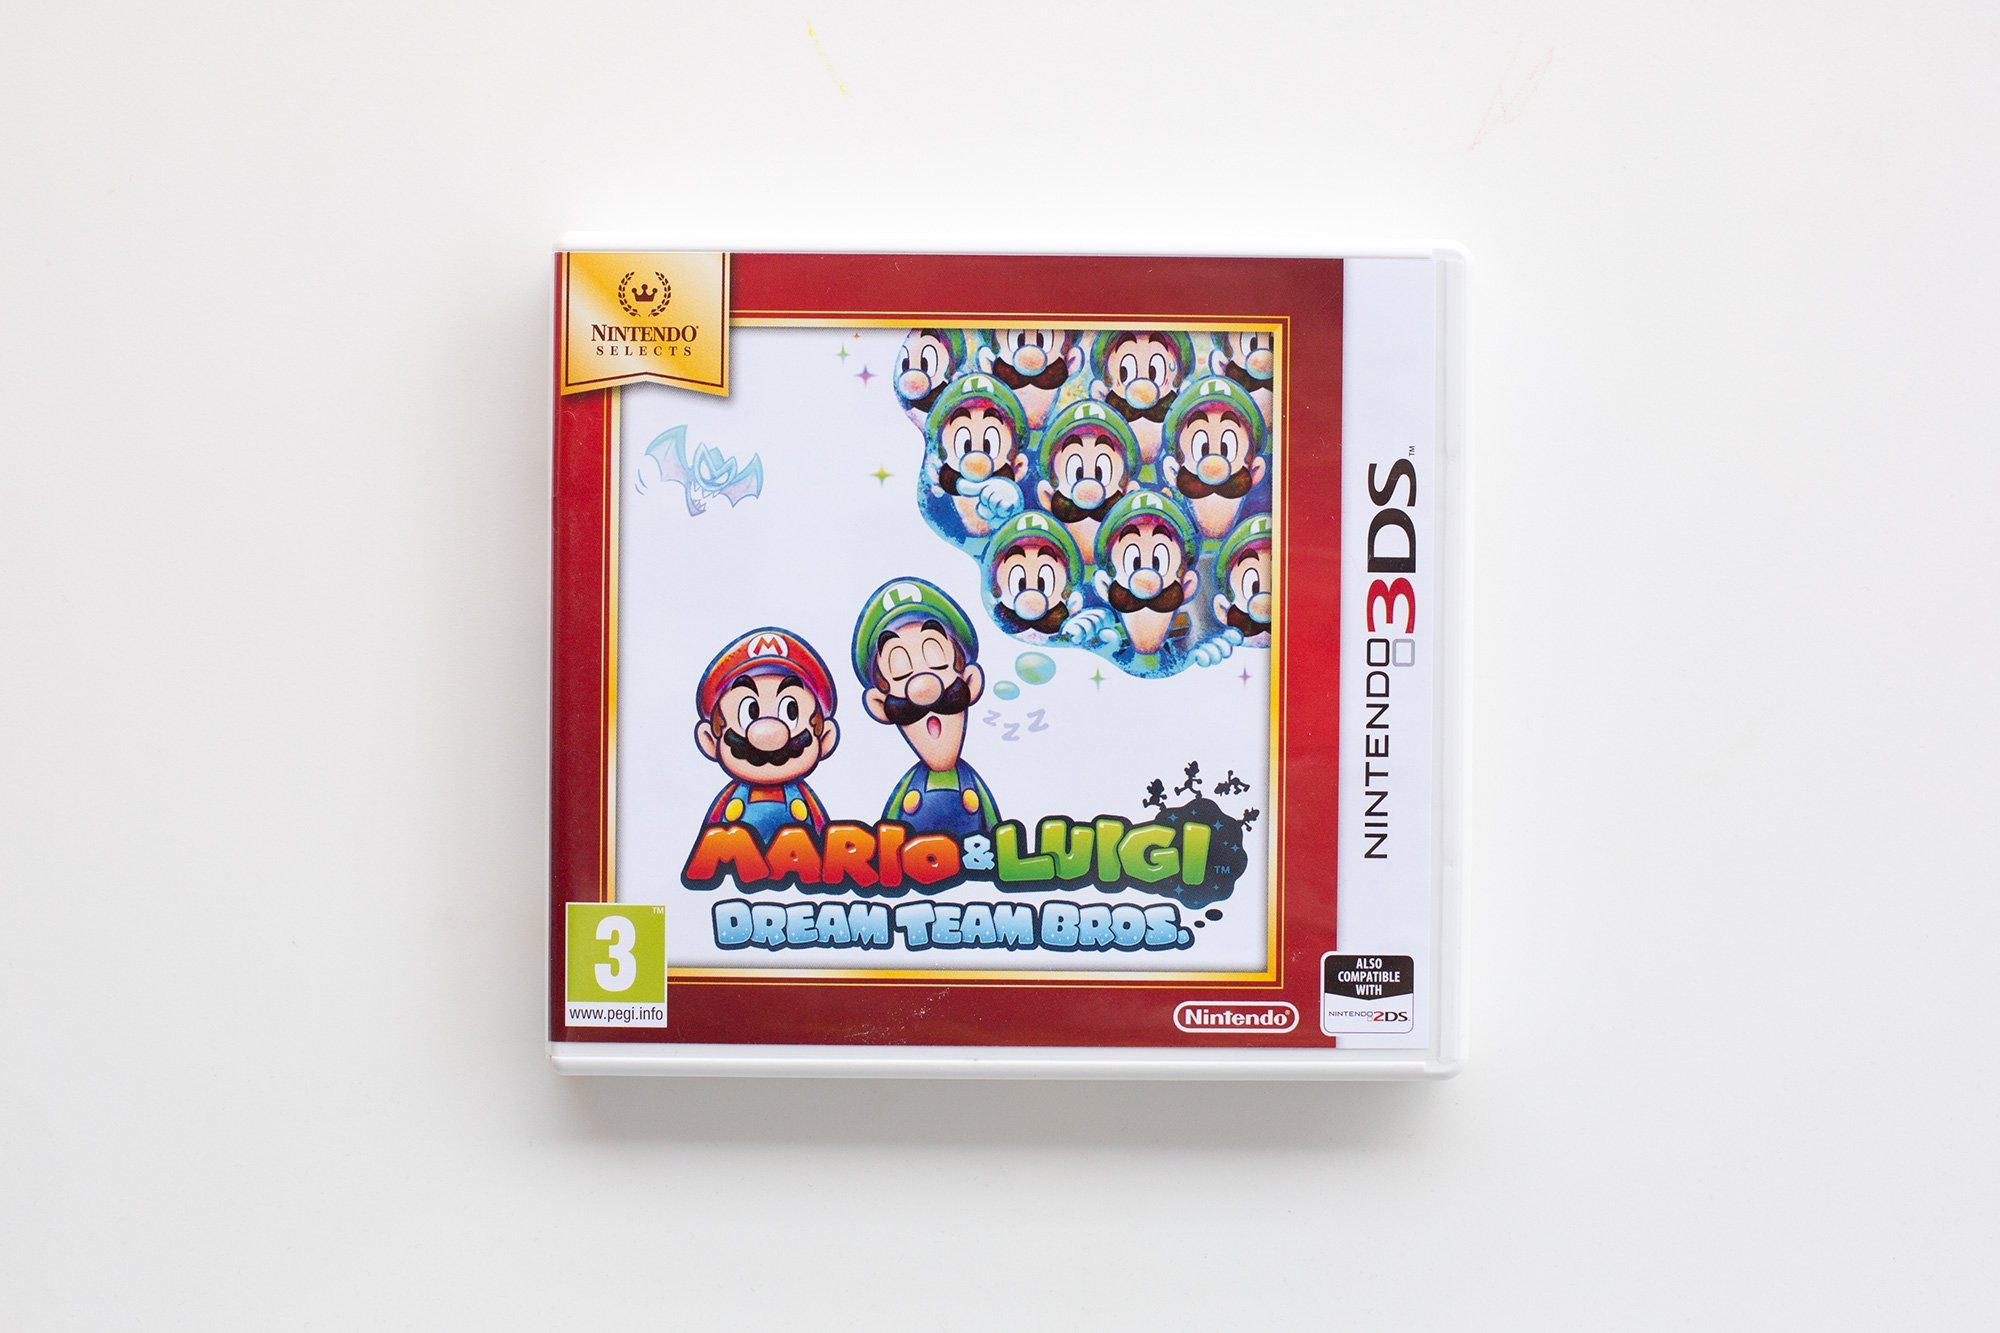 Mario & Luigi Dream team bros, 3ds